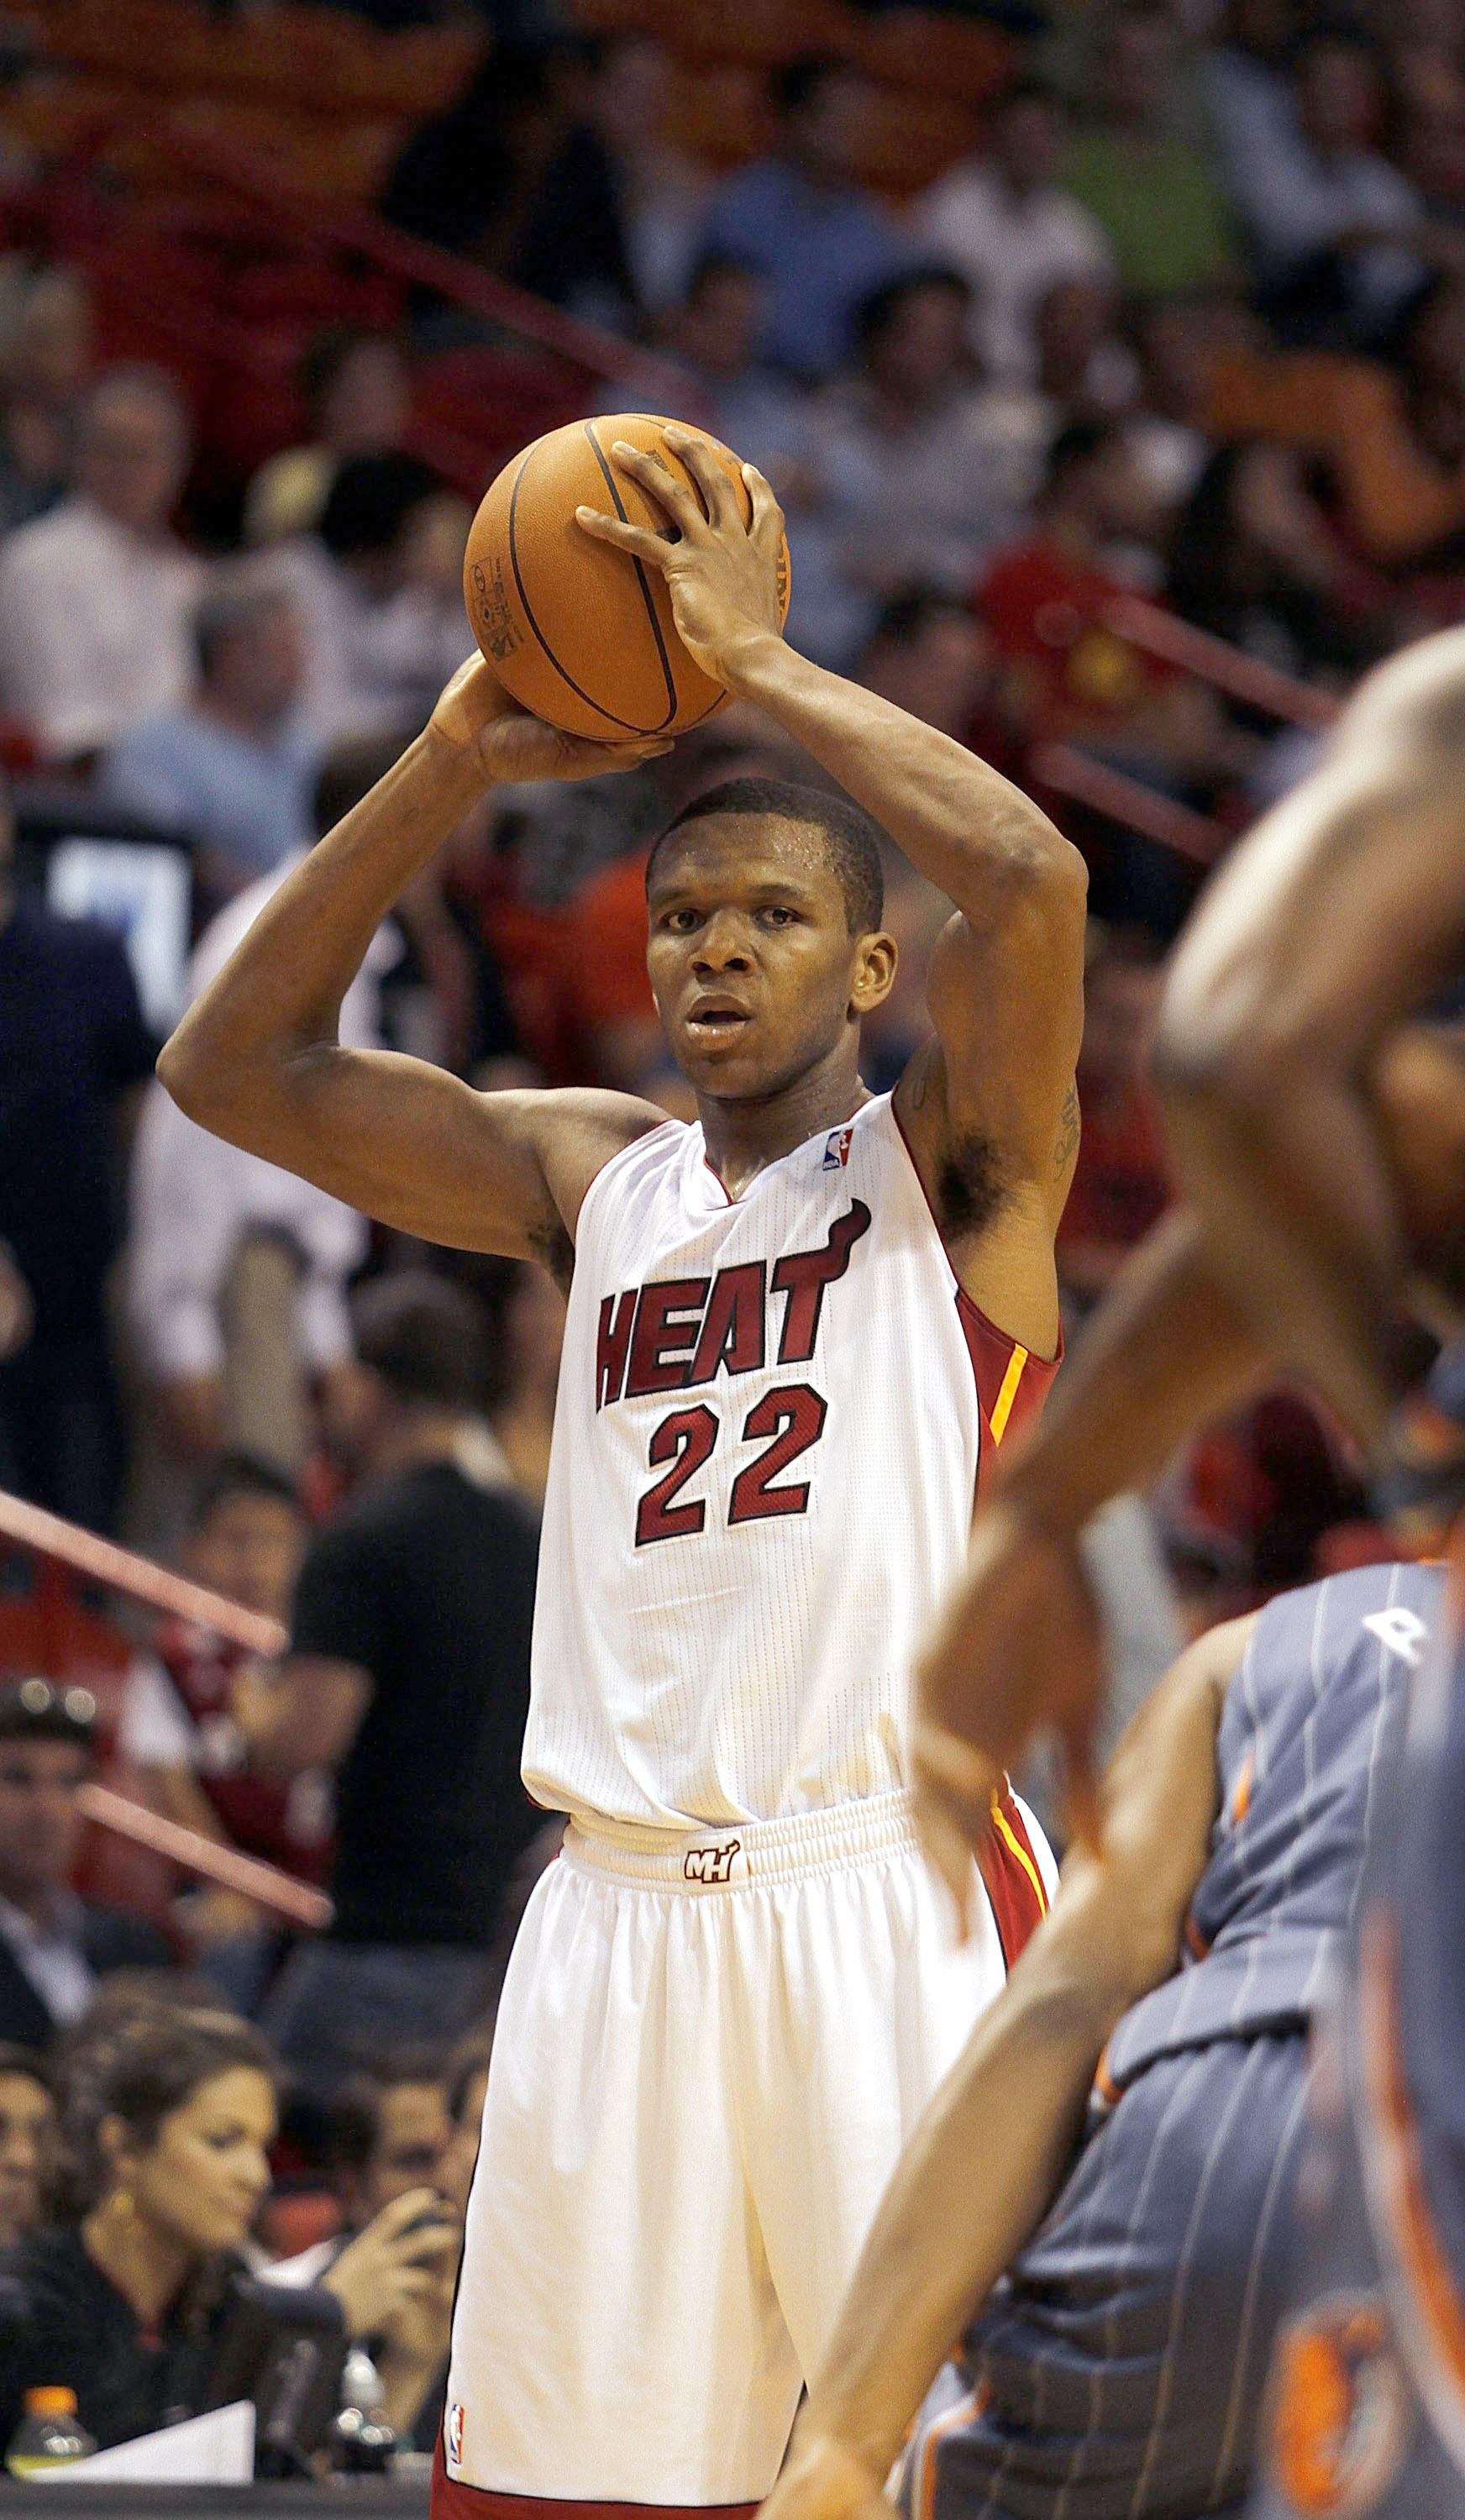 MIAMI - OCTOBER 18:  Forward James Jones #22 of the Miami Heat looks to pass against the Charlotte Bobcats on October 18, 2010 at American Airlines Arena in Miami, Florida. NOTE TO USER: User expressly acknowledges and agrees that, by downloading and/or u